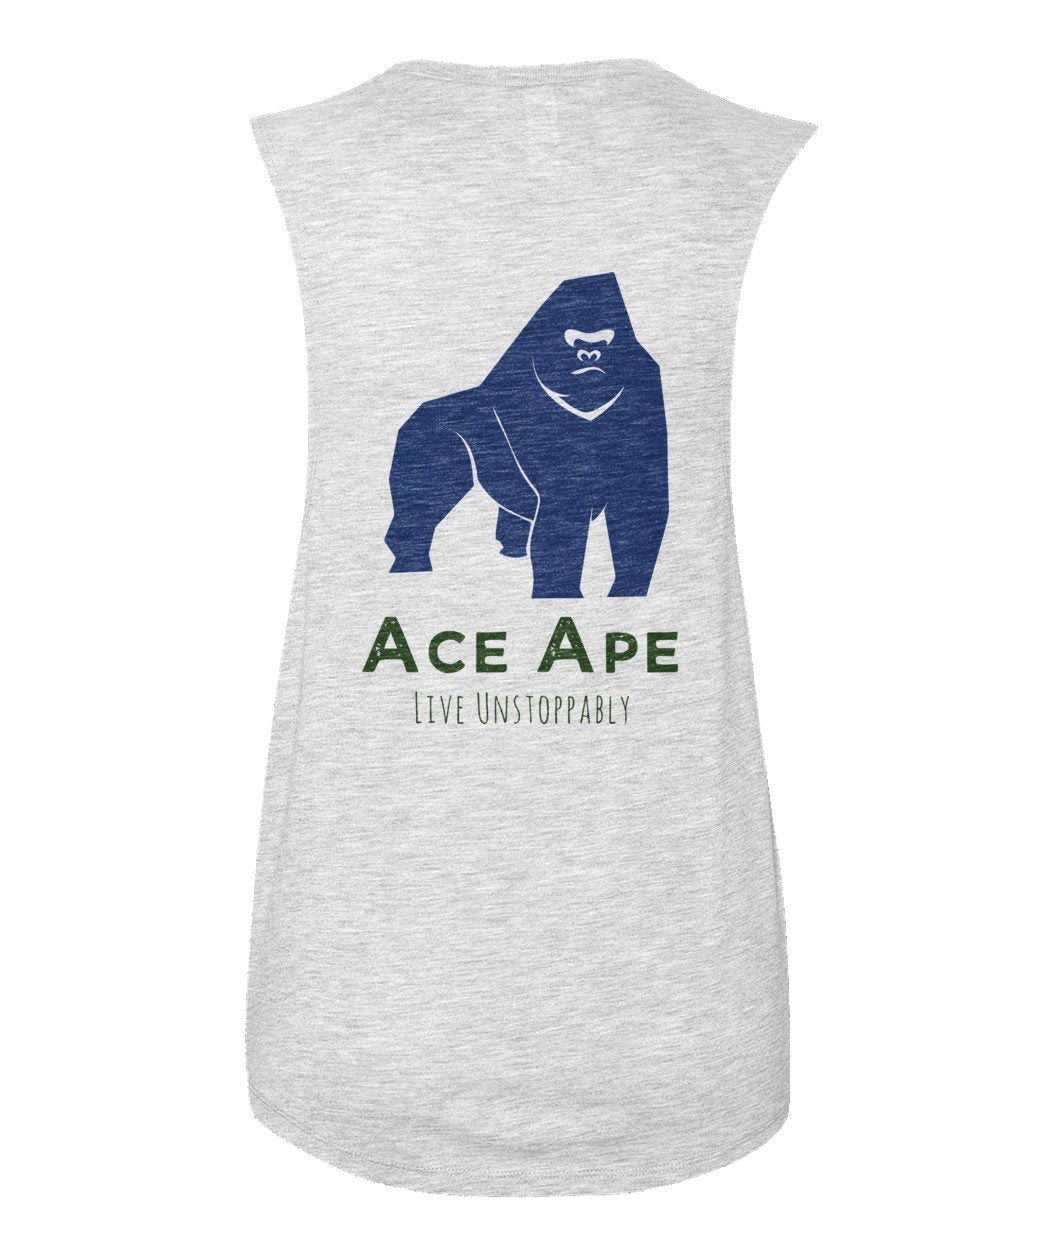 Tank Tops Thumbs Up Women's Muscle Tank AceApe CBD Dispensary